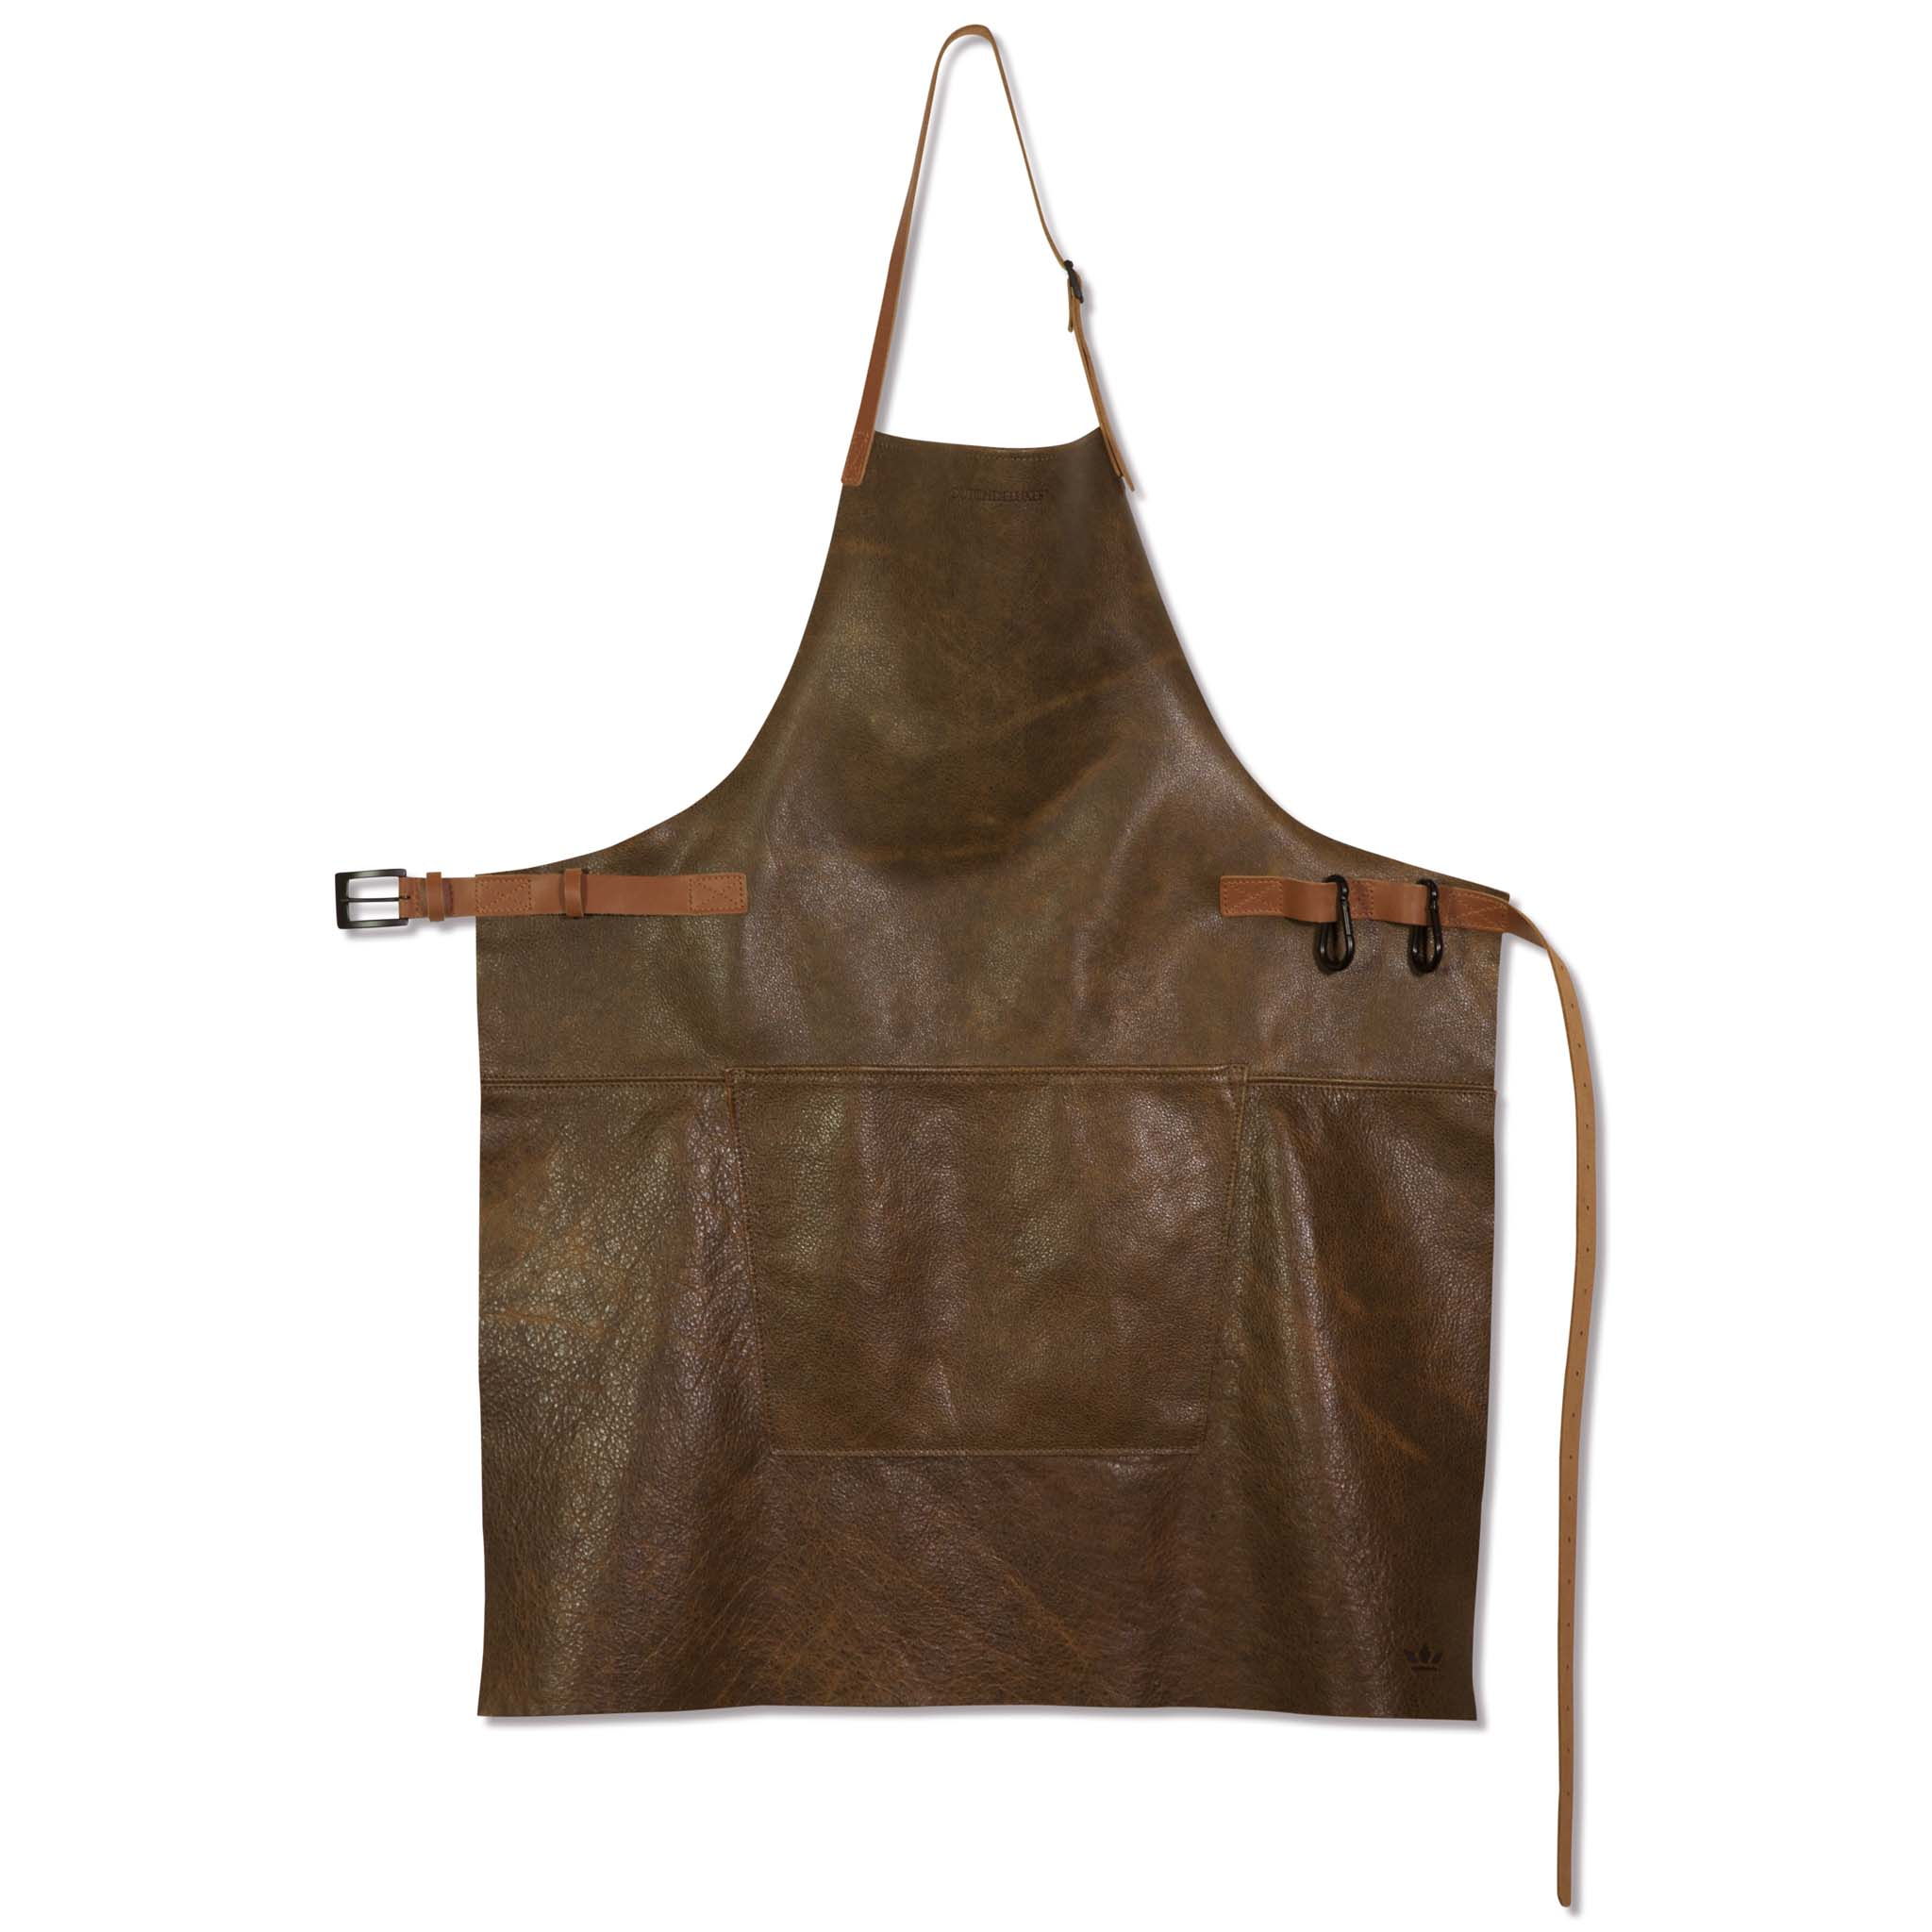 Dutchdeluxes Leather BBQ Apron in Vintage Brown